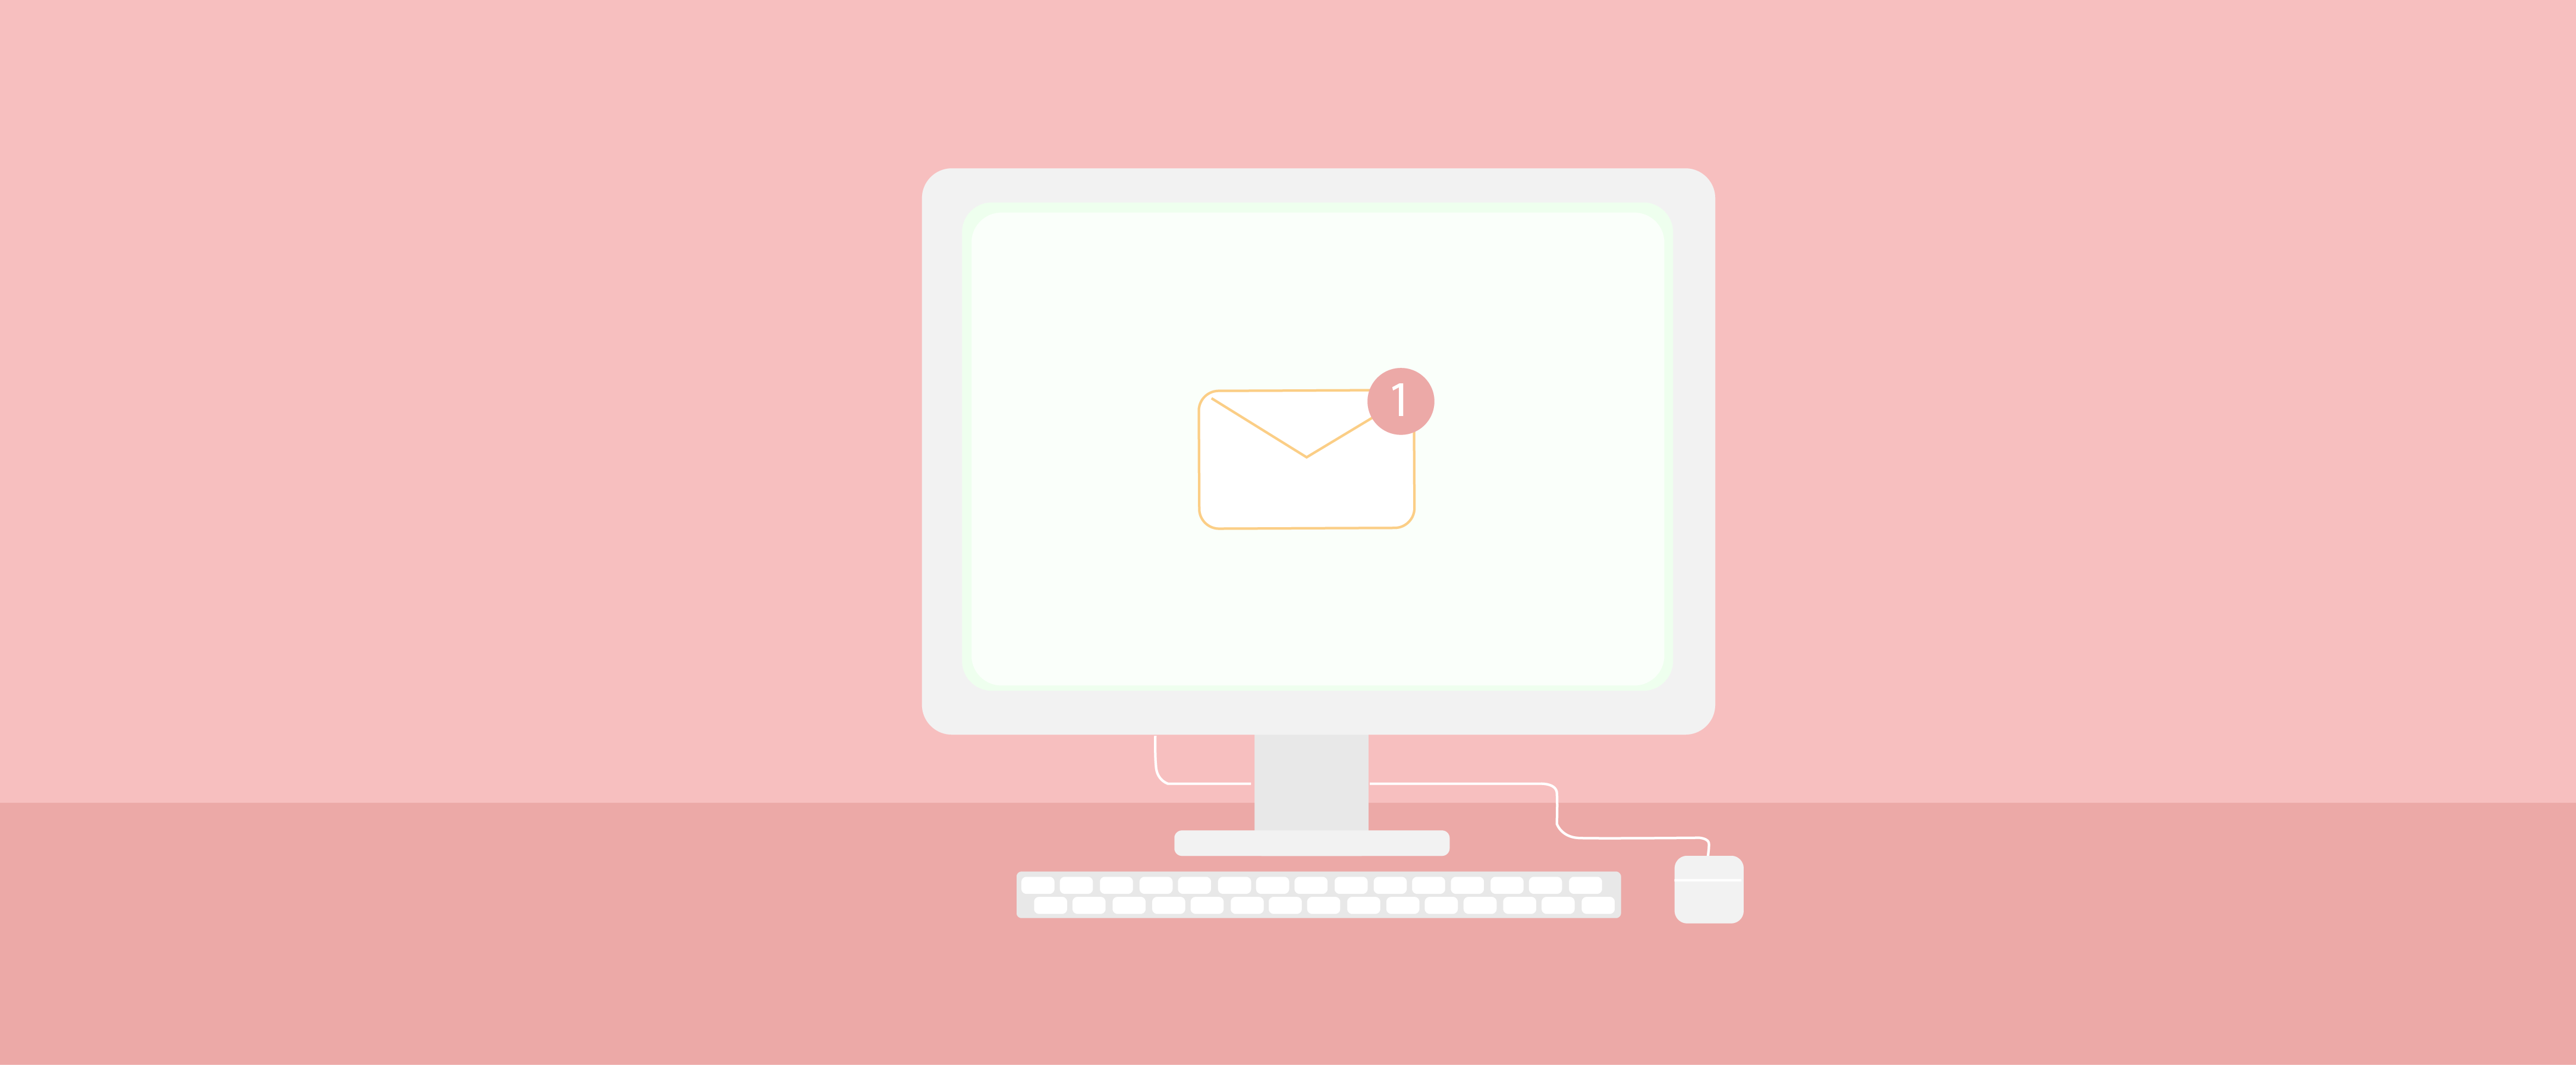 10 Email Marketing Campaign Ideas